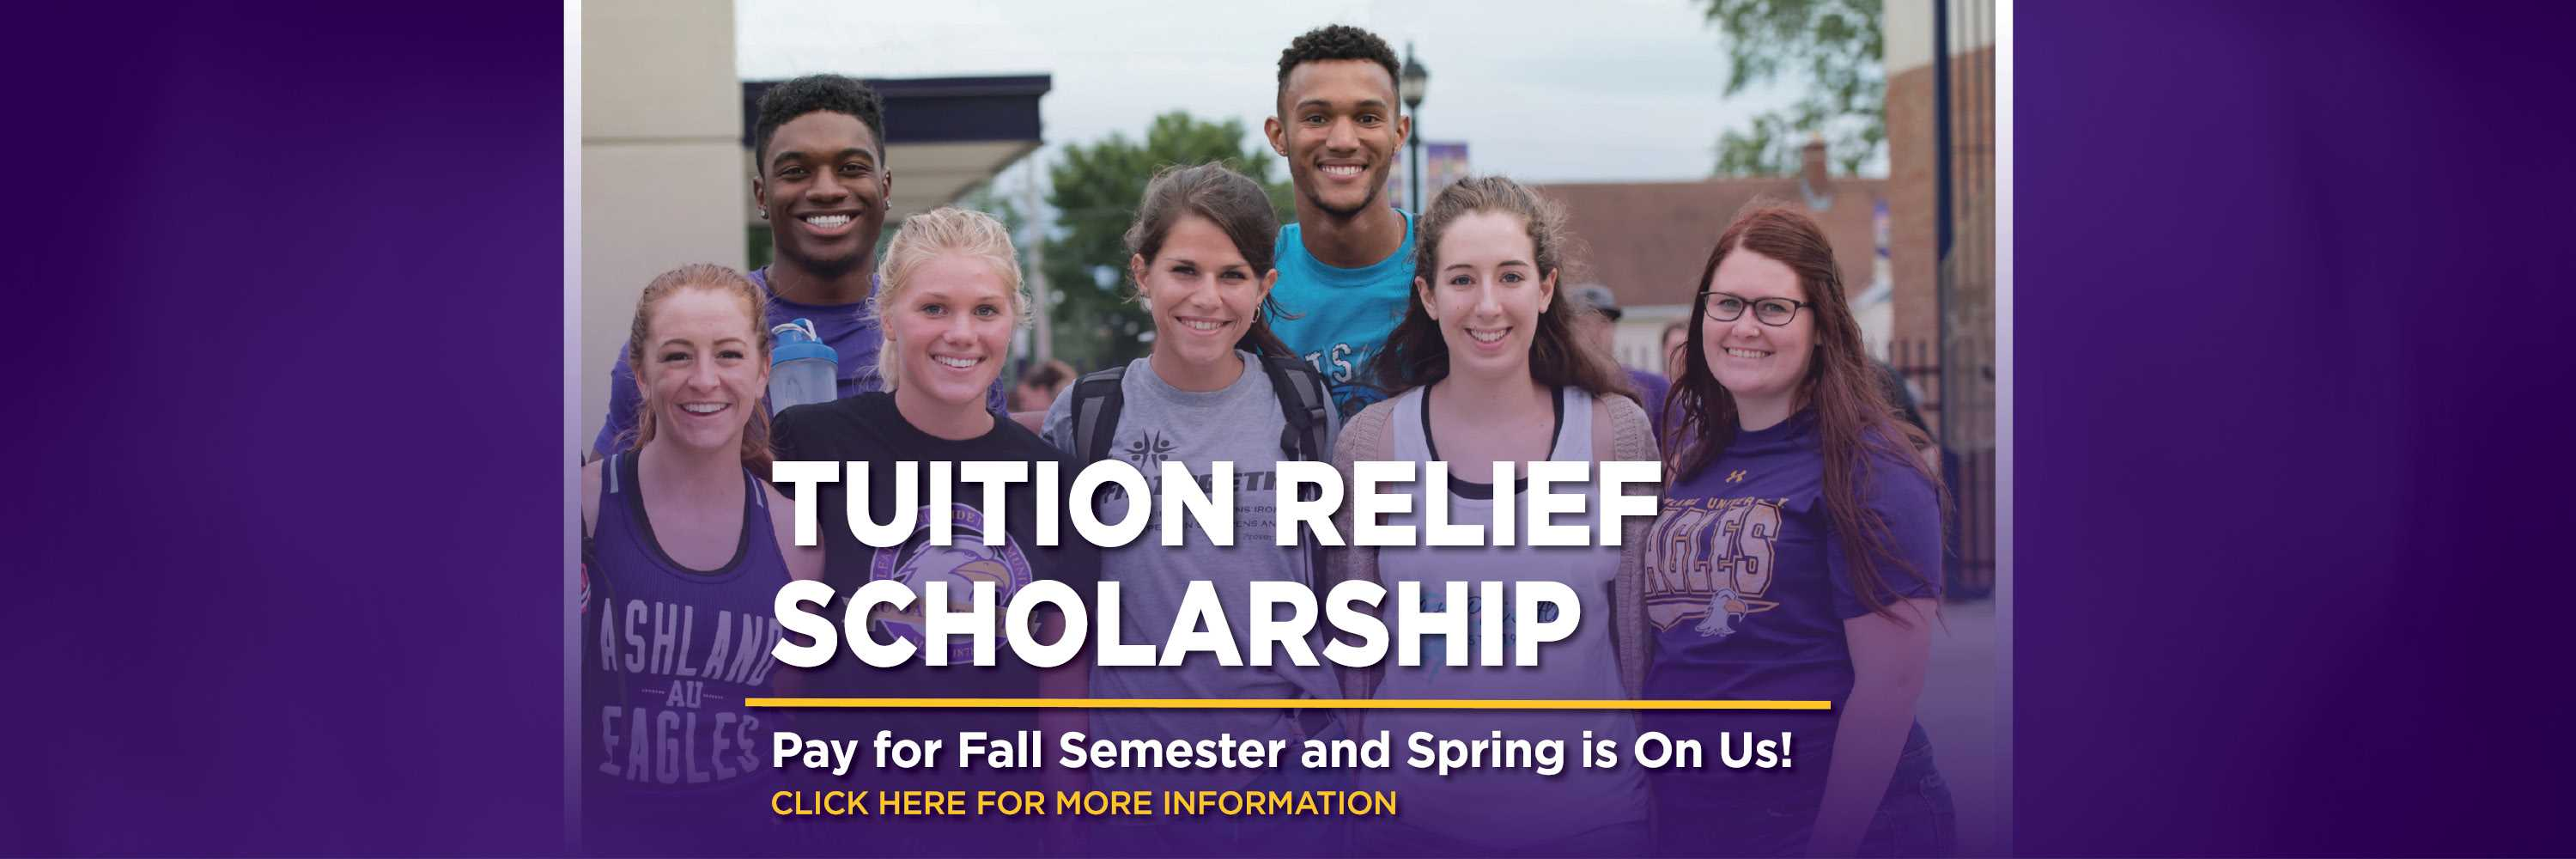 Ashland University Tuition Relief Scholarship - Pay for fall semester and spring is on us!